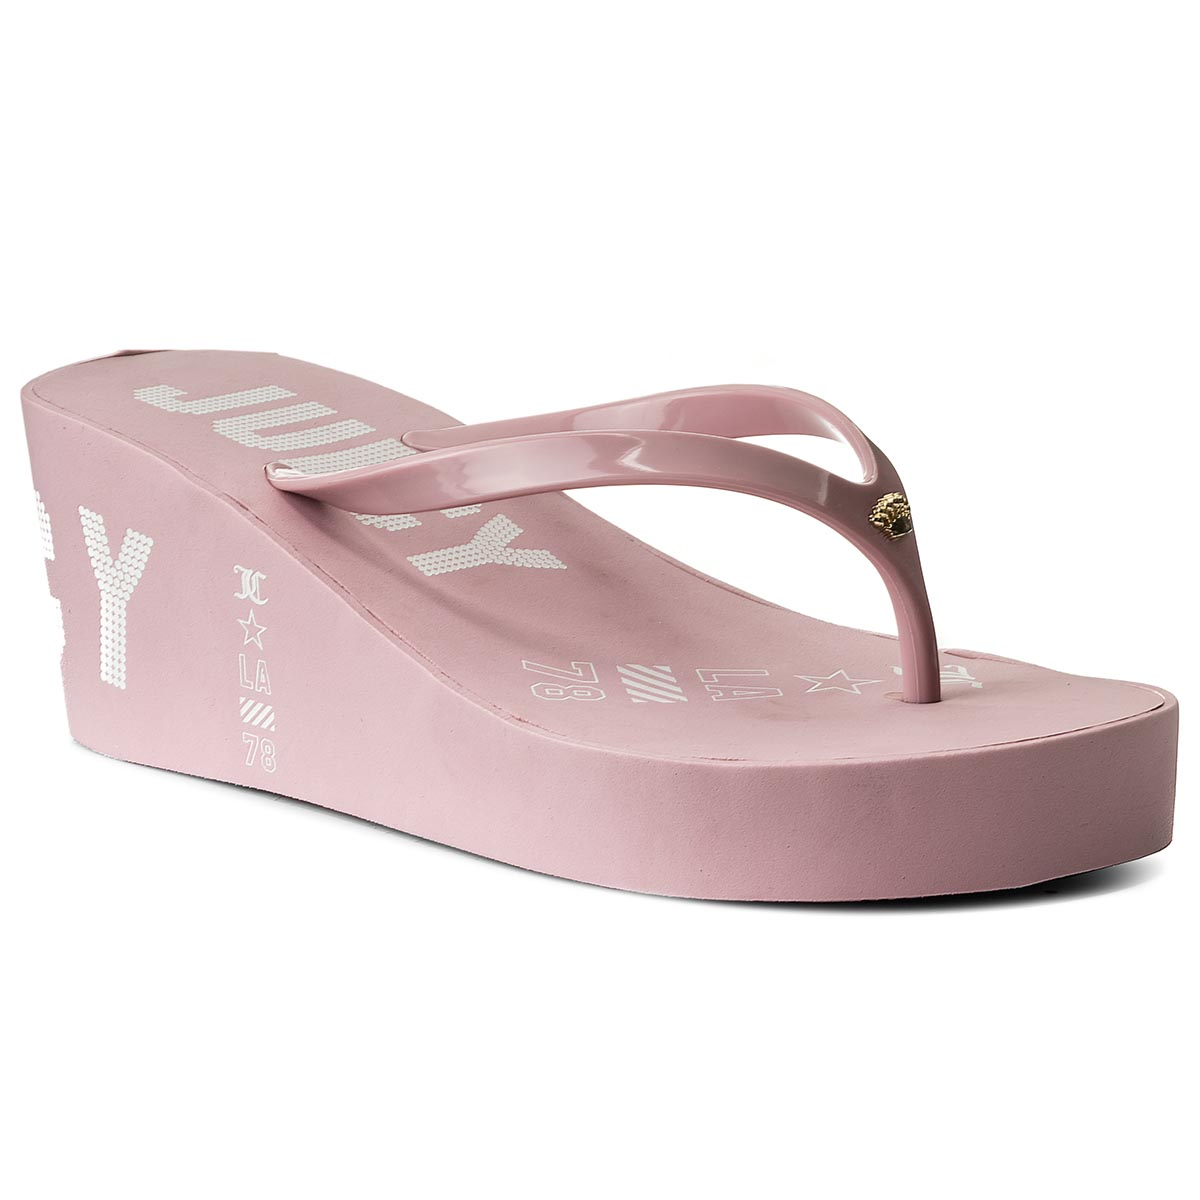 Japonki JUICY COUTURE - Natalie Rubber JB150-DPK Dusty Pink